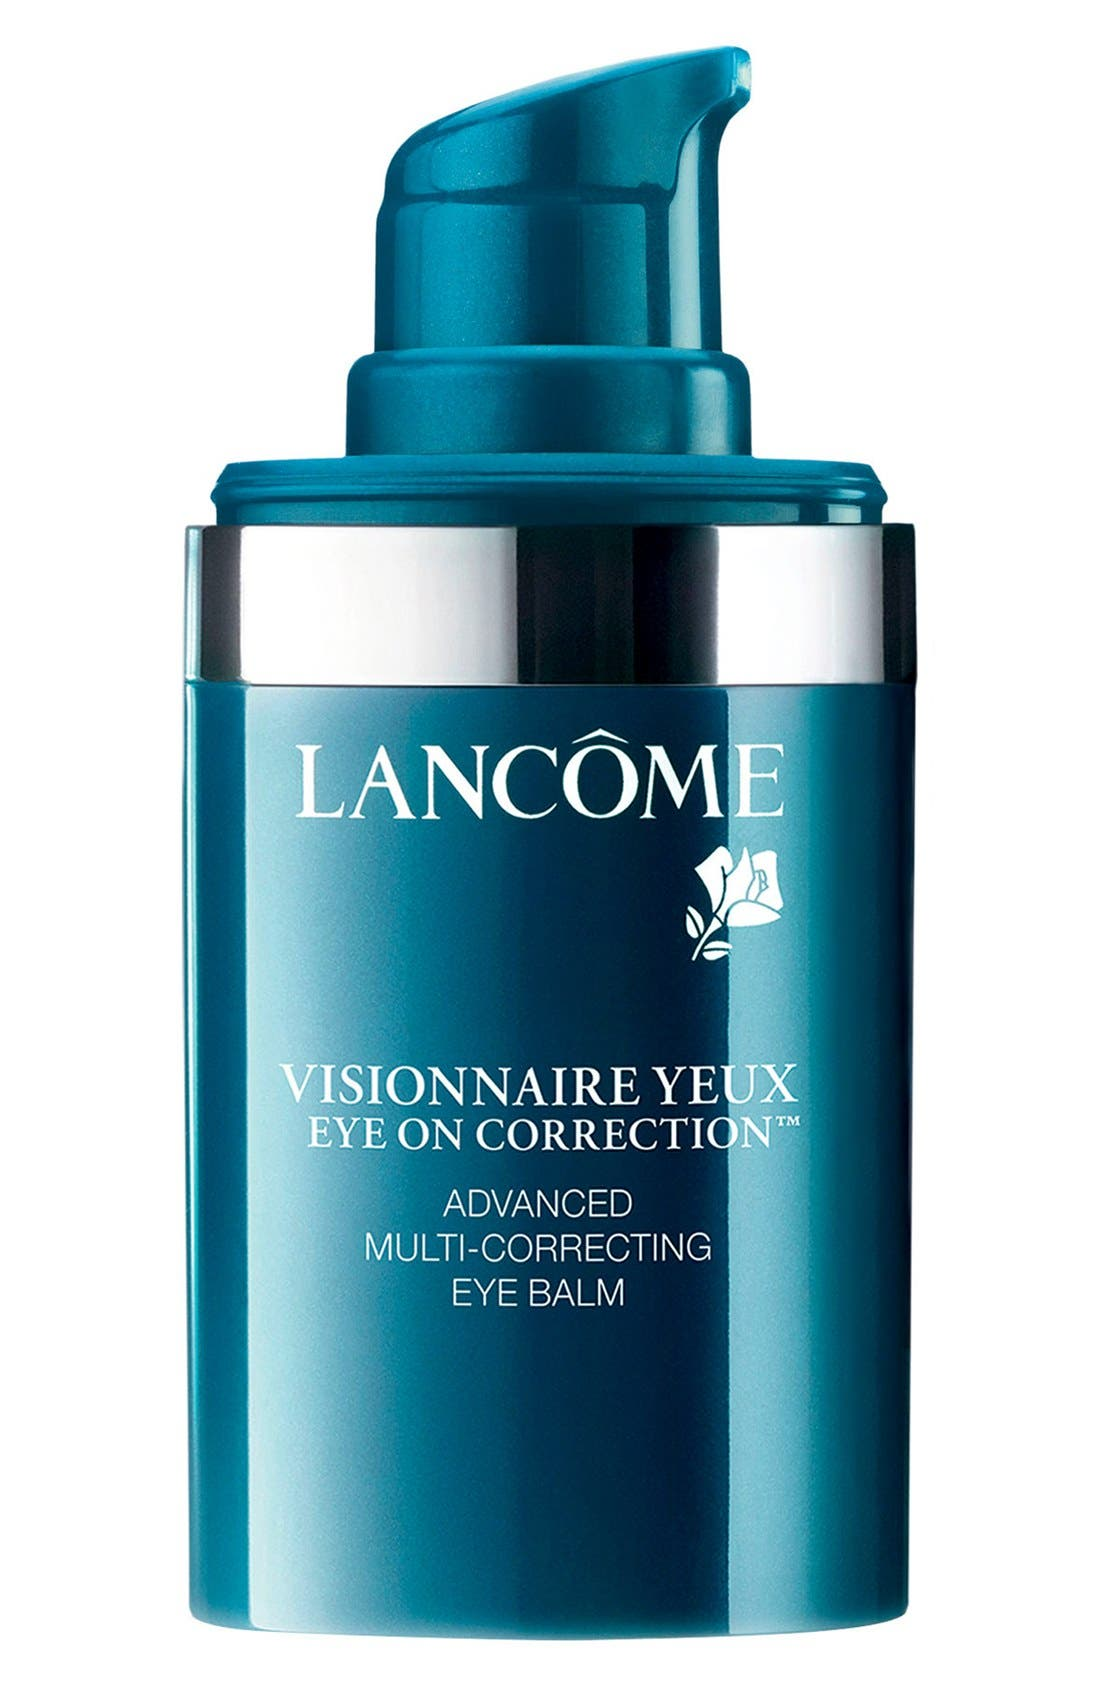 Lancôme Visionnaire Yeux Eye on Correction® Advanced Multi-Correcting Eye Balm